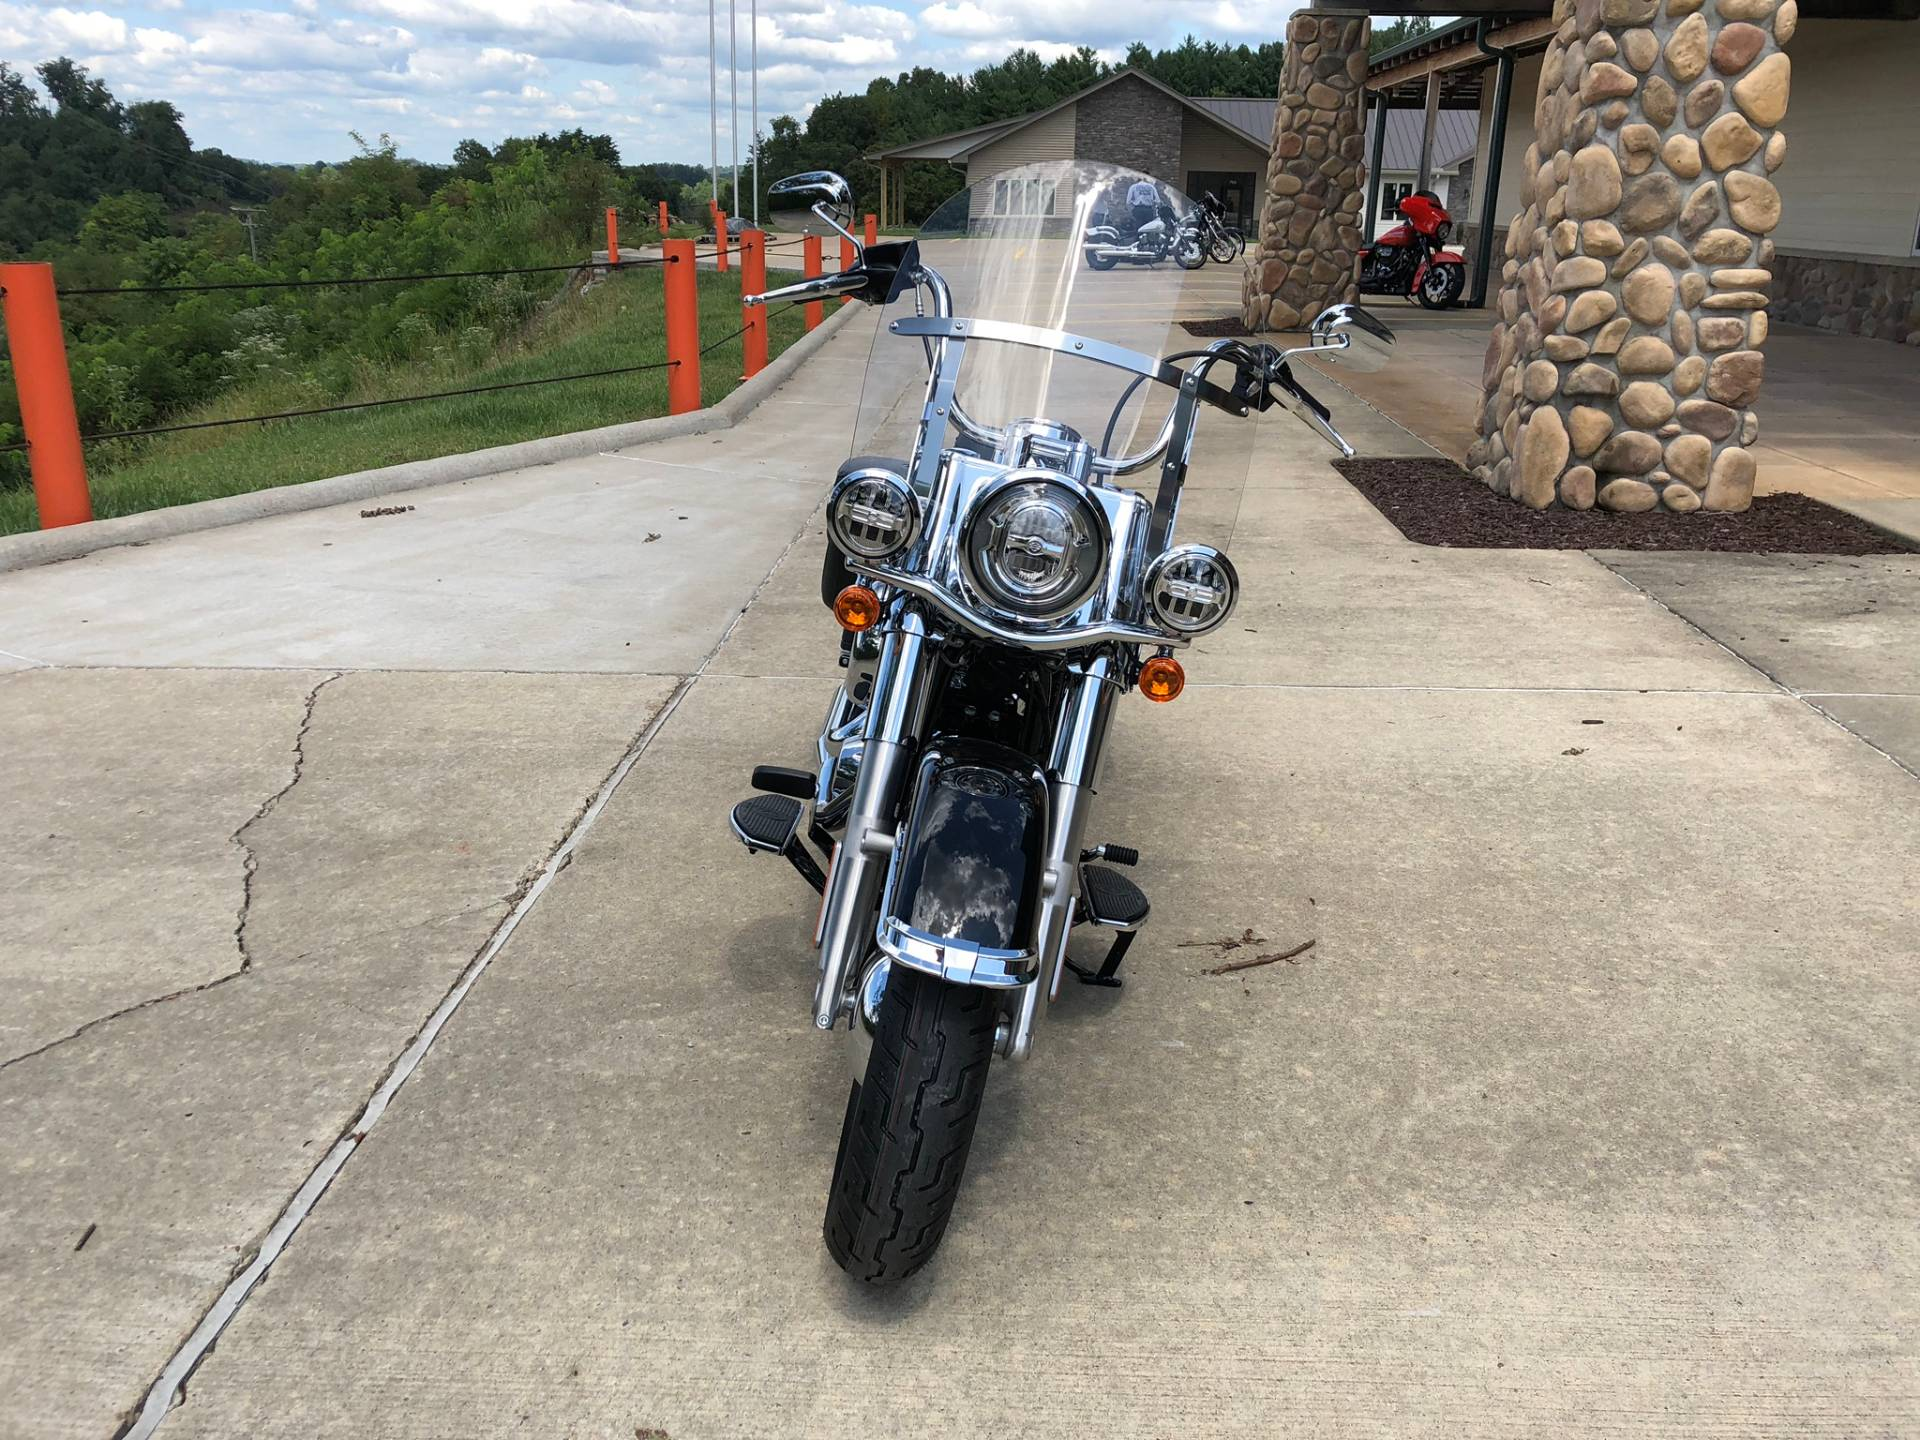 2020 Harley-Davidson Heritage 107 in Williamstown, West Virginia - Photo 3